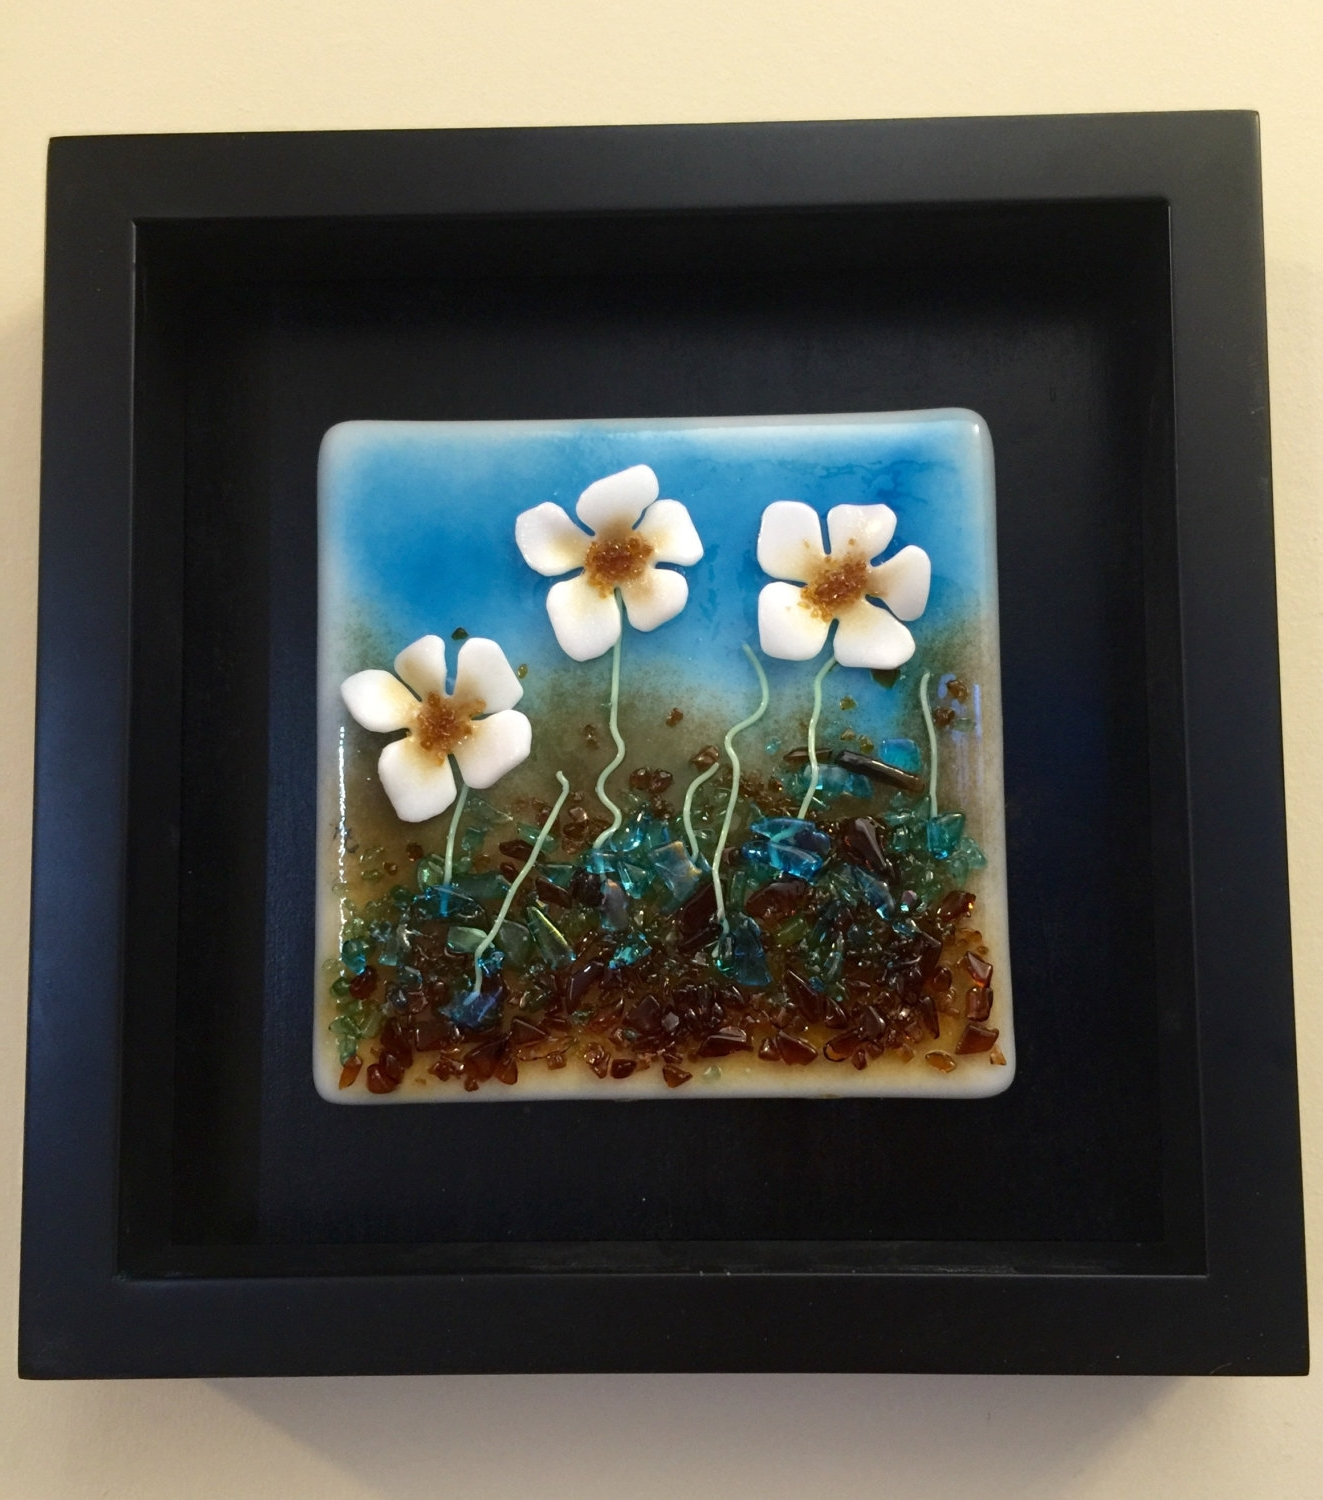 Widely Used Fused Glass Flower Wall Art Throughout Home Decor, Fused Glass, Handmade Fused Glass, Wall Panel, Fused (View 14 of 15)